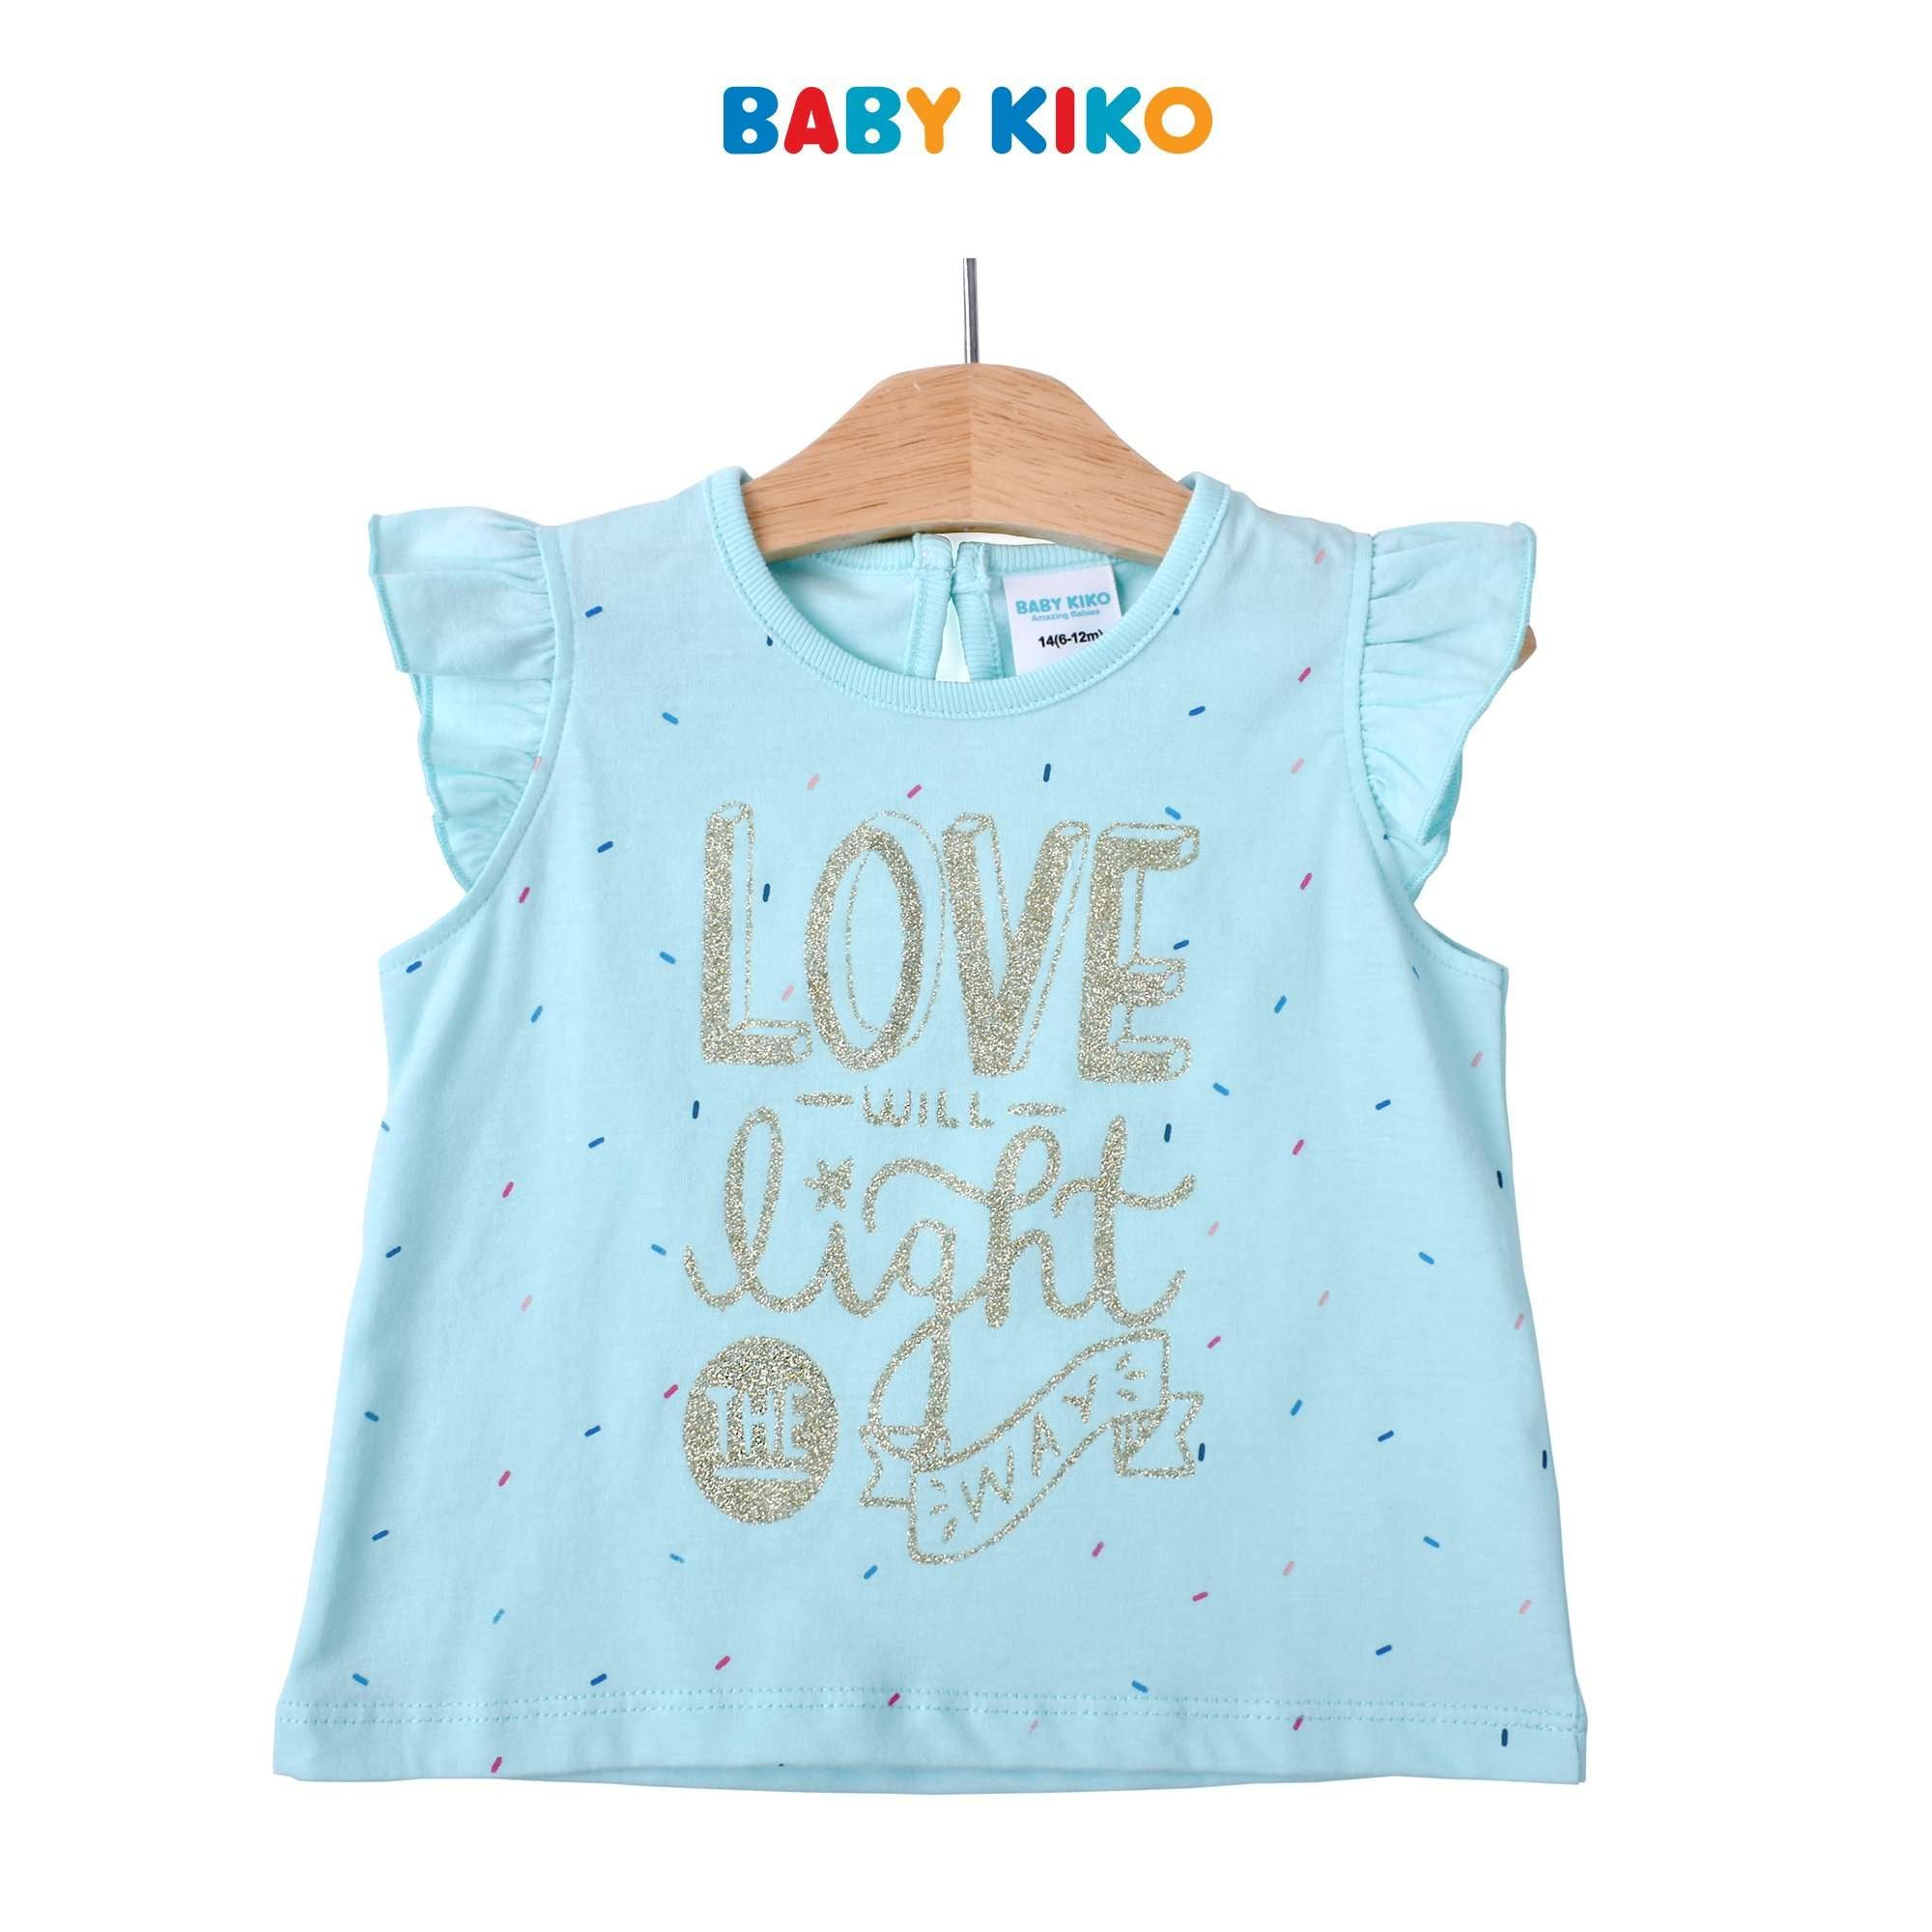 Baby KIKO Baby Girl Sleeveless Tee- Blue 330140-113 : Buy Baby KIKO online at CMG.MY